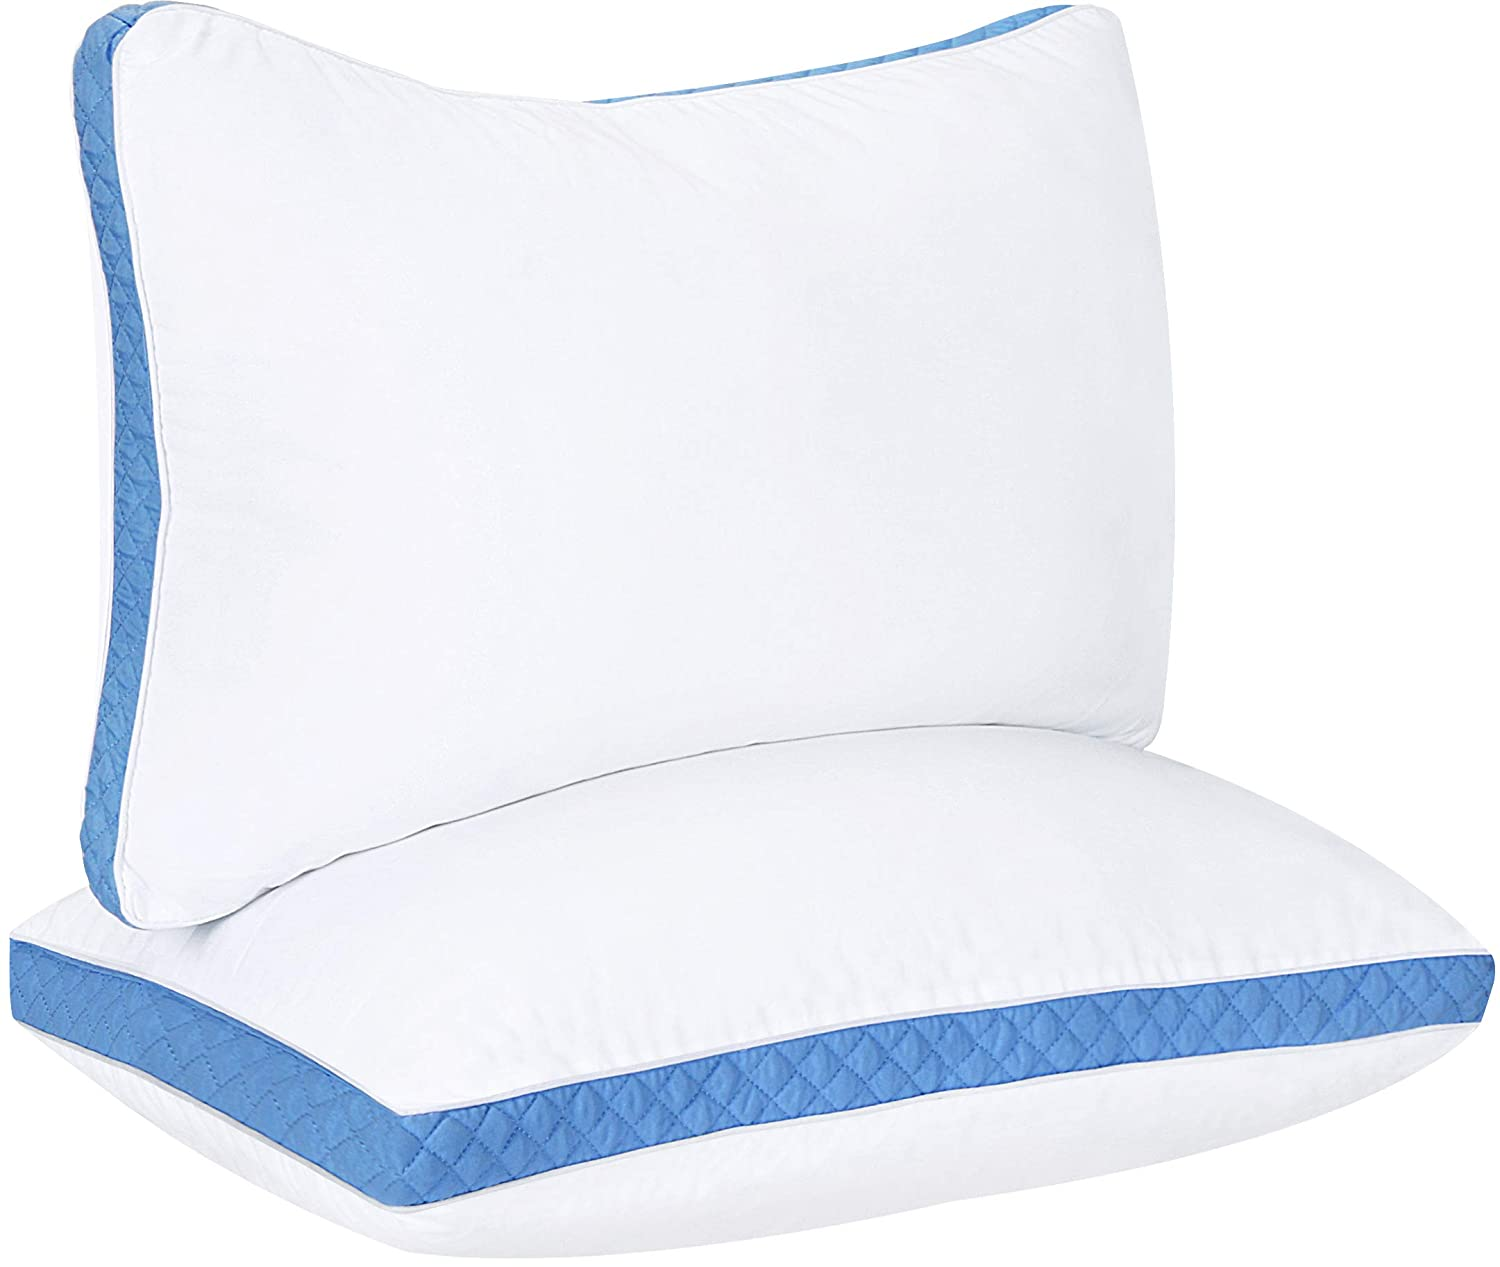 Utopia Bedding Gusseted Premium Quality Bed Pillows